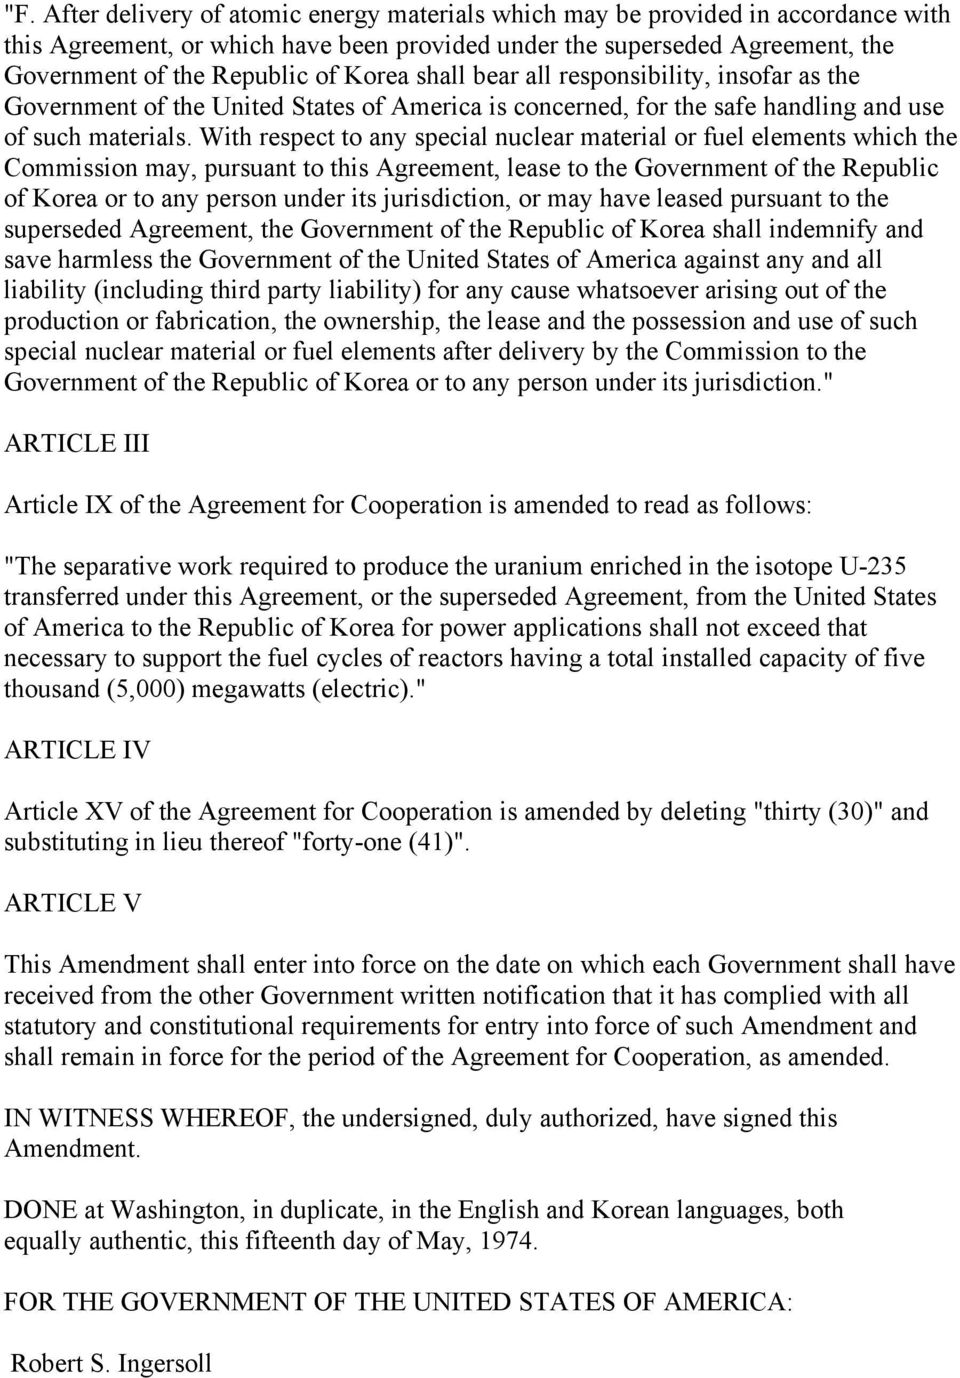 With respect to any special nuclear material or fuel elements which the Commission may, pursuant to this Agreement, lease to the Government of the Republic of Korea or to any person under its